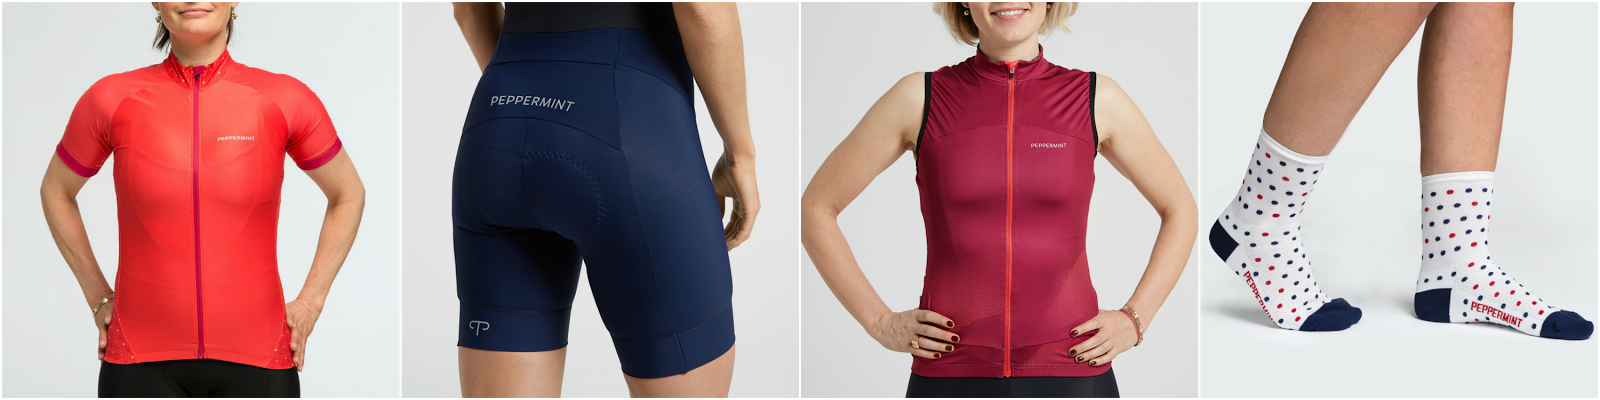 Their bib shorts hit all the concerns of women s contours 295e32026